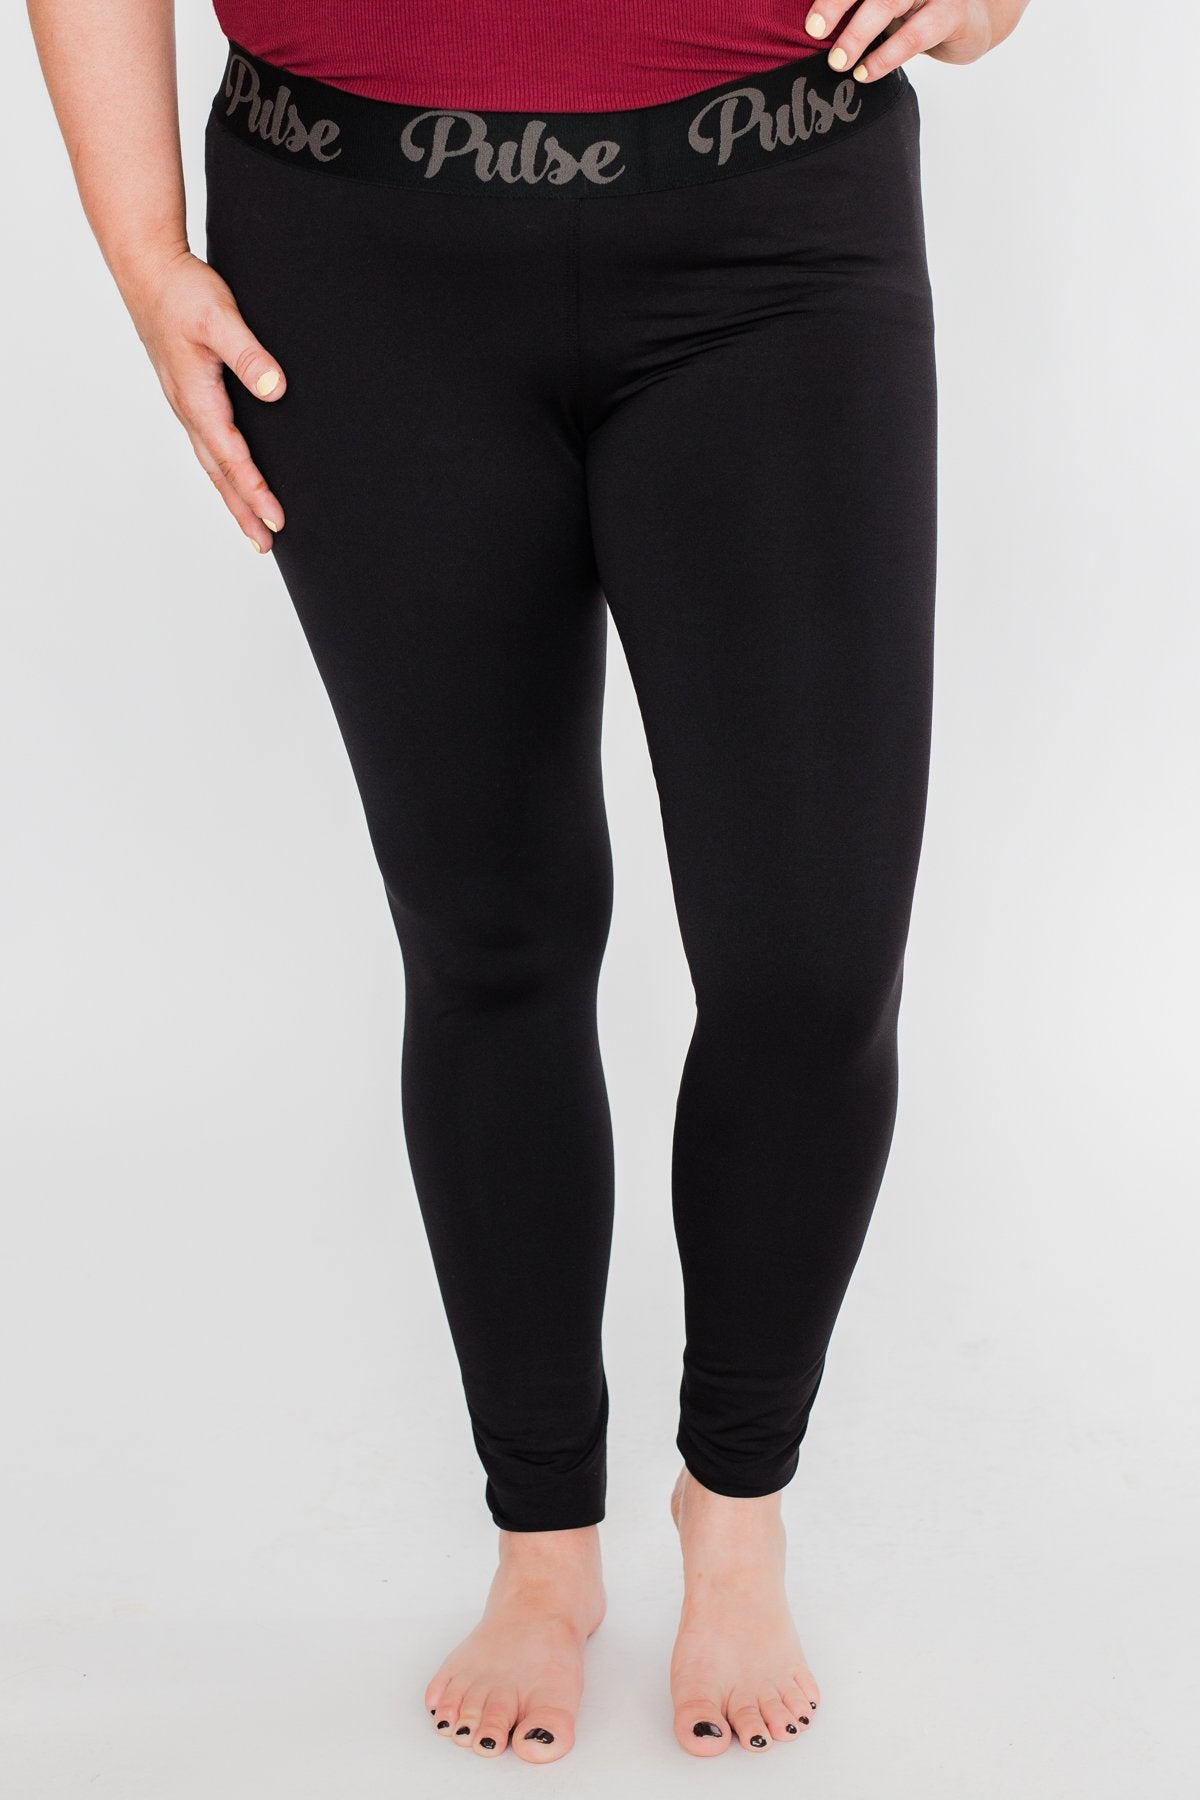 Pulse Basics Leggings- Black